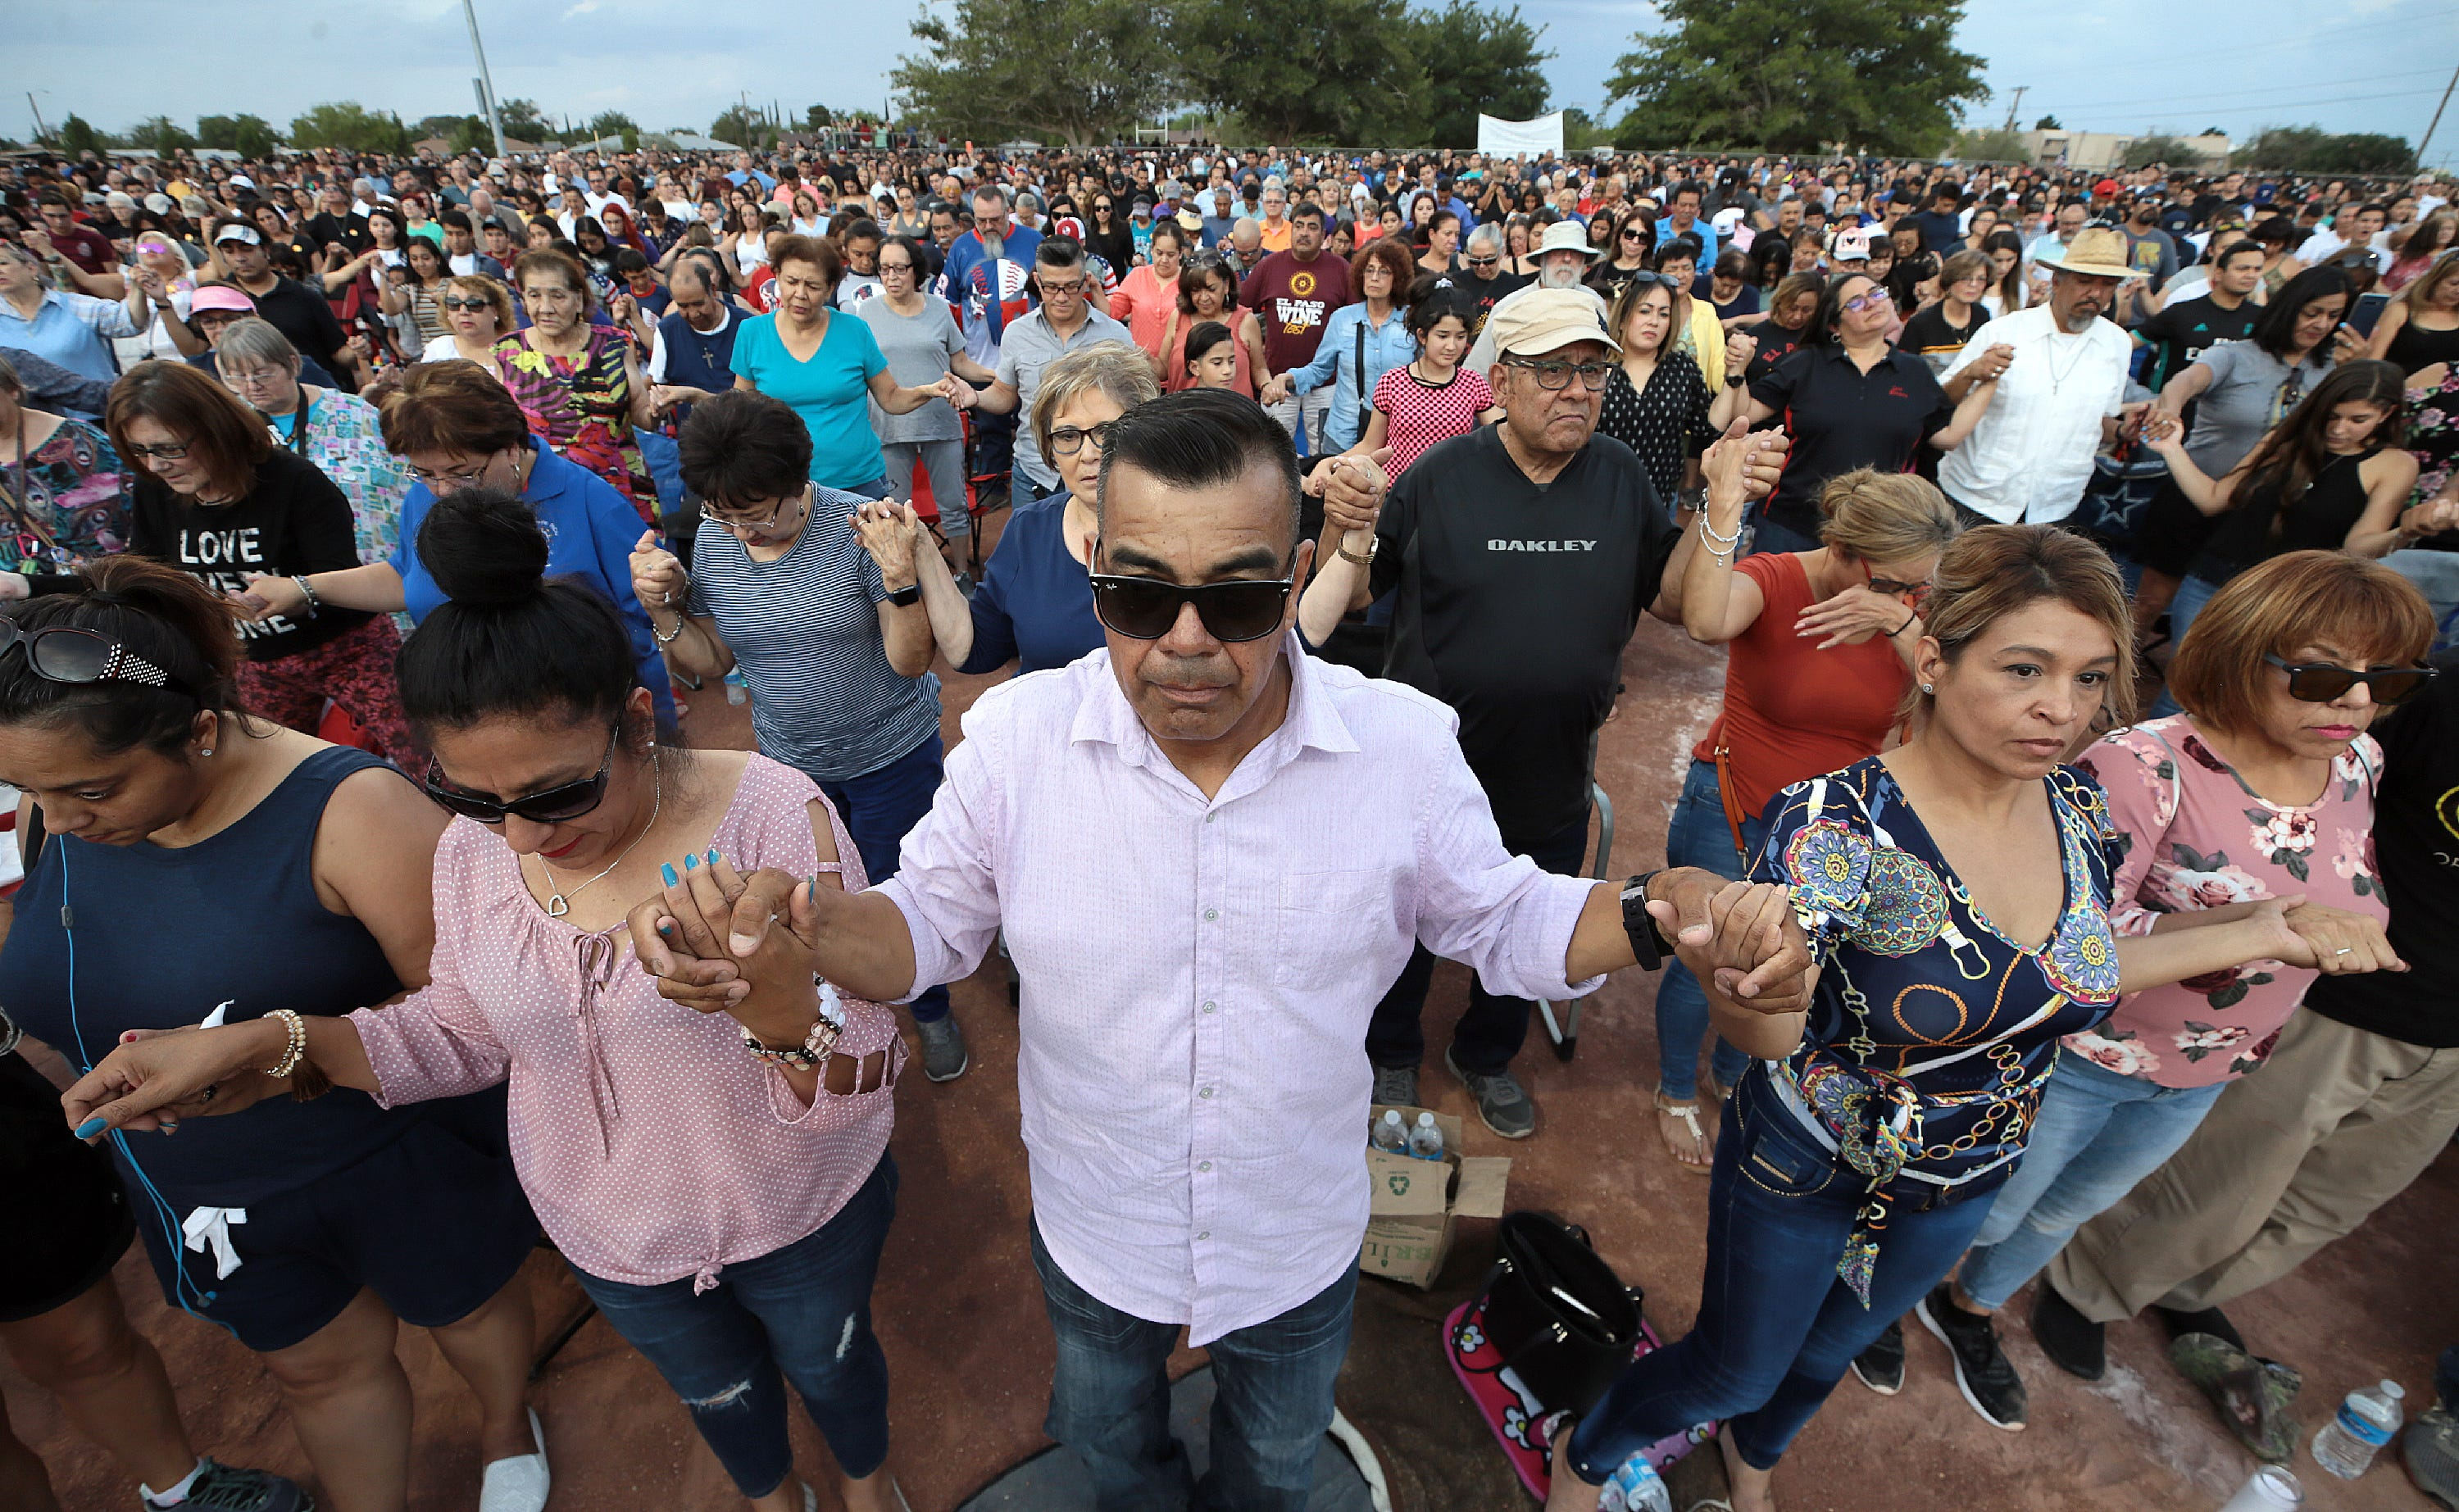 El Pasoans join hands and pray during the Hope Border Institute Prayer Vigil on Sunday, Aug. 4, 2019, in El Paso, Texas, a day after a mass shooting at a Walmart store killed 22 people and wounded 25 more.